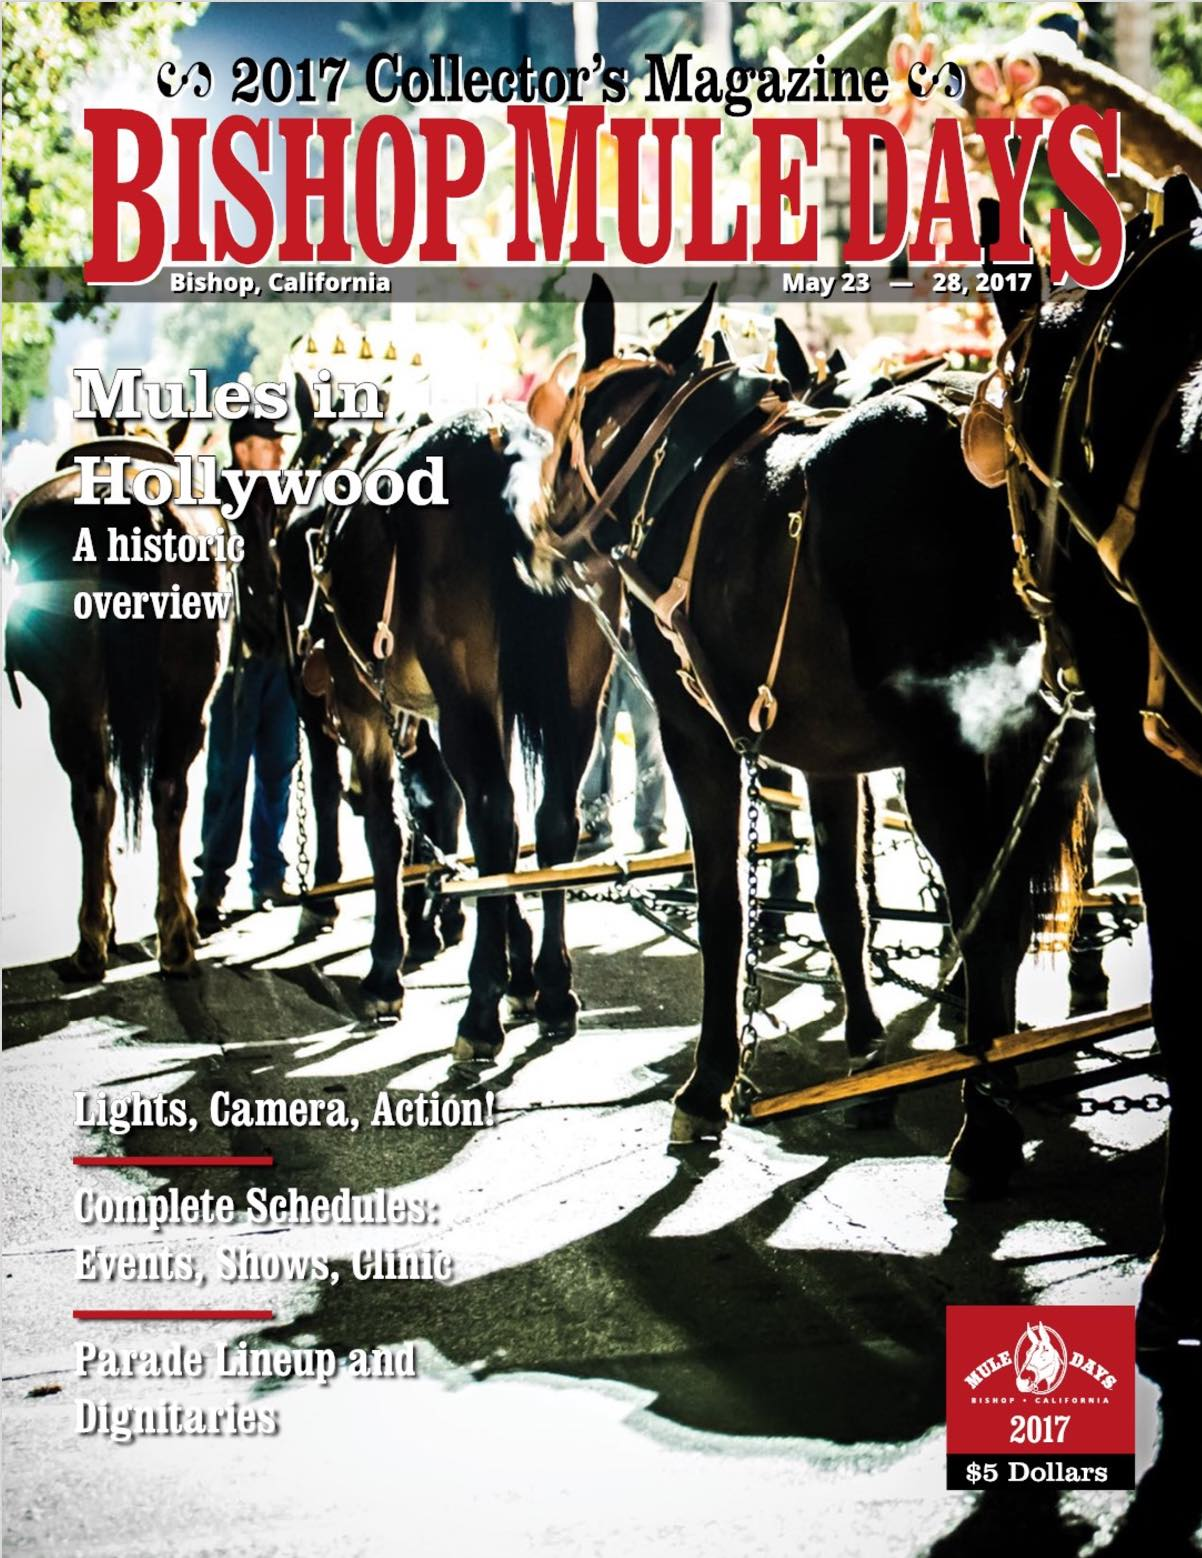 Click here to view a sample of the 2017 Mule Days Collector's Magazine.